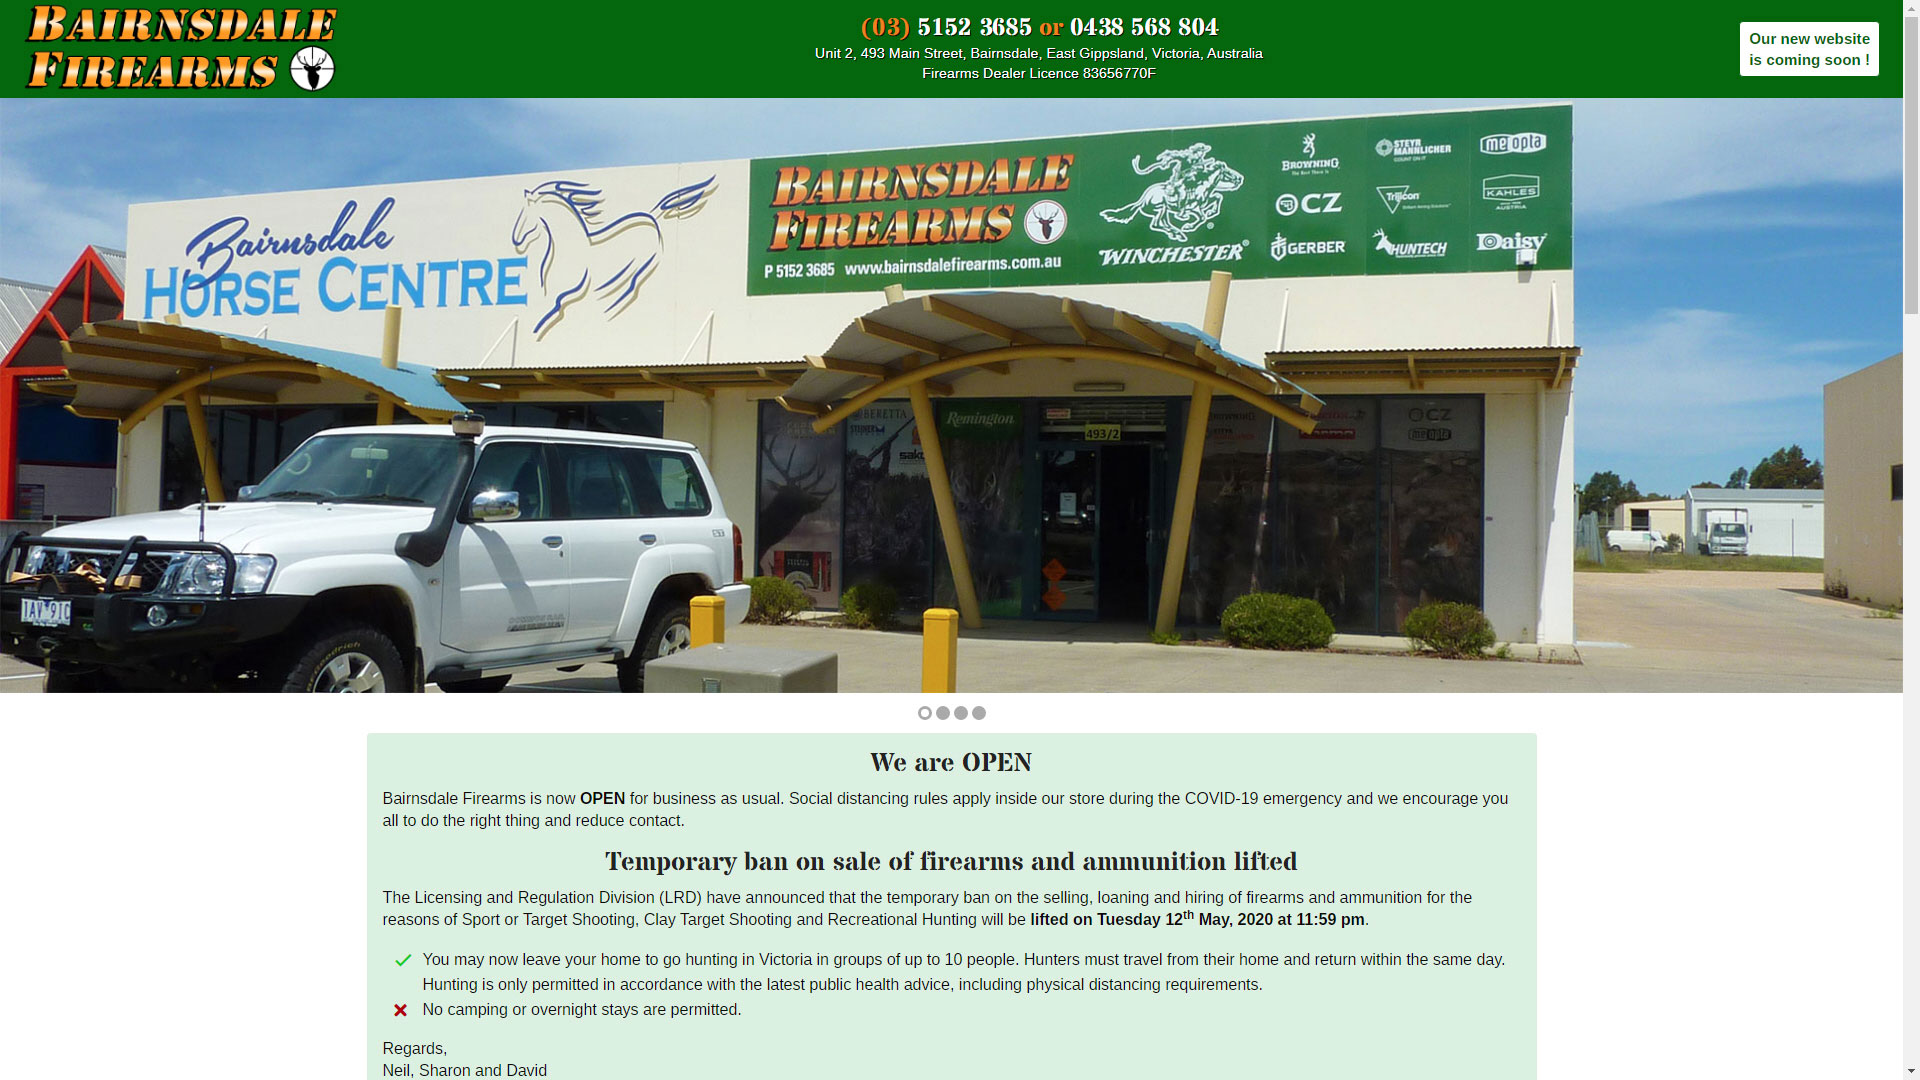 Bairnsdale Firearms website